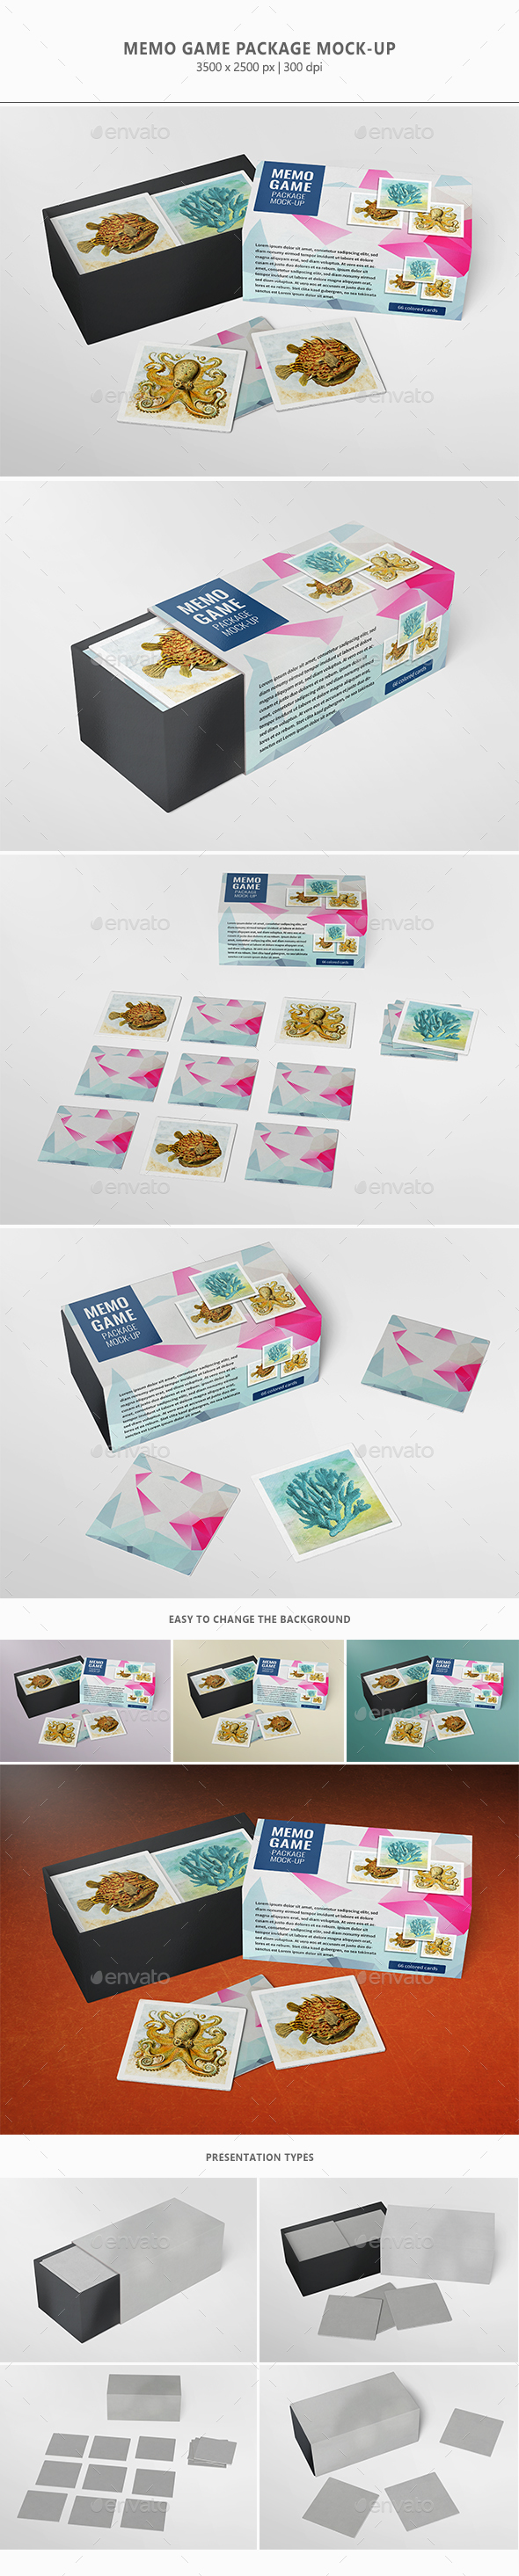 Memo Game Package Mock-up - Miscellaneous Packaging